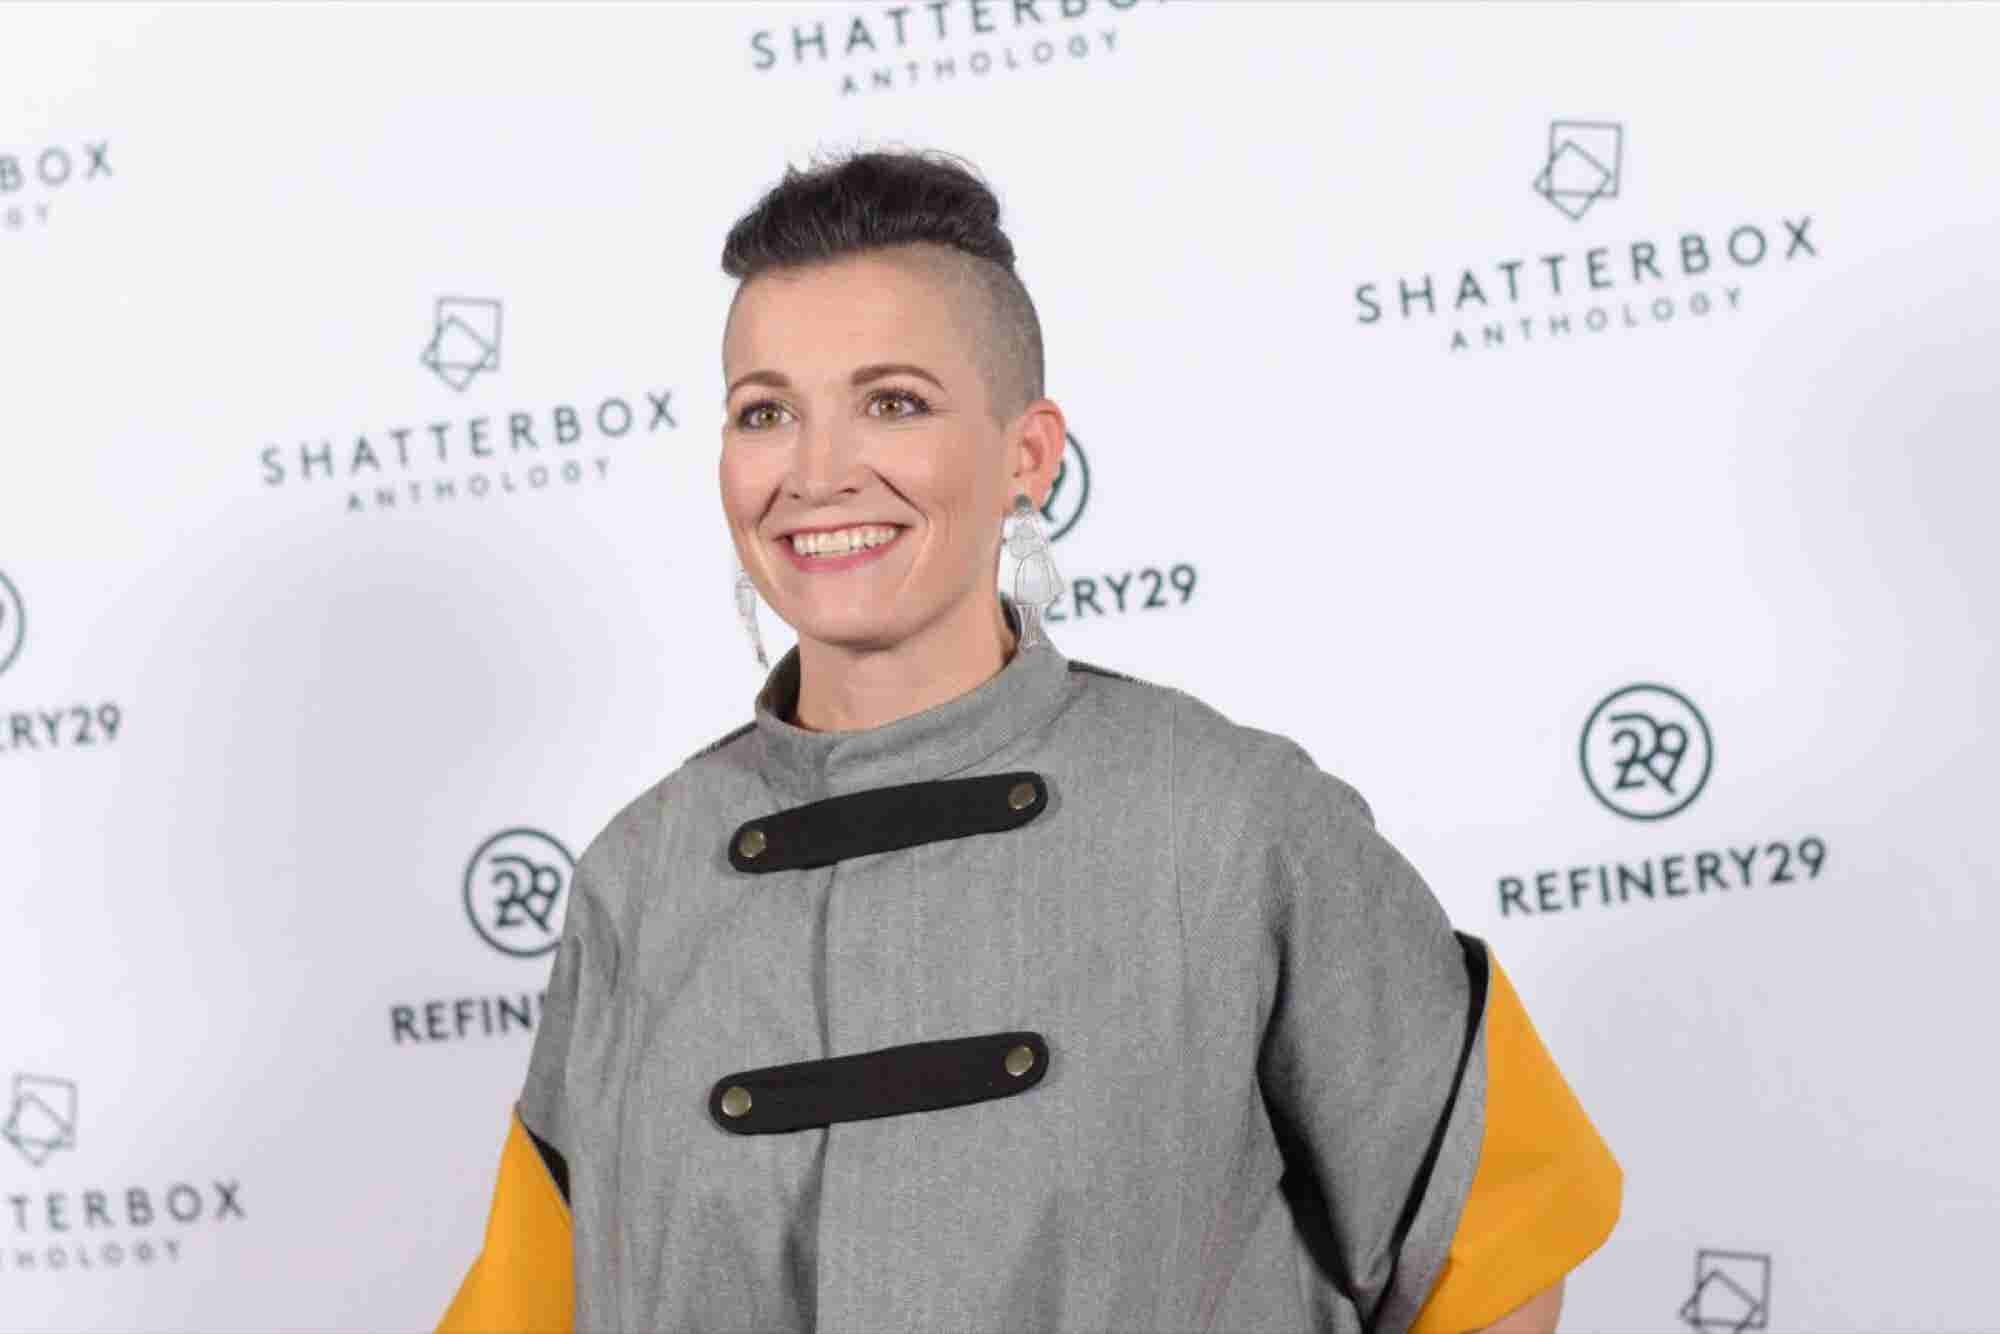 Refinery29's Co-Founder Discusses the Tough Women Who Inspired Her, Surviving Gunfire on the Job and Finding Strength in Vulnerability